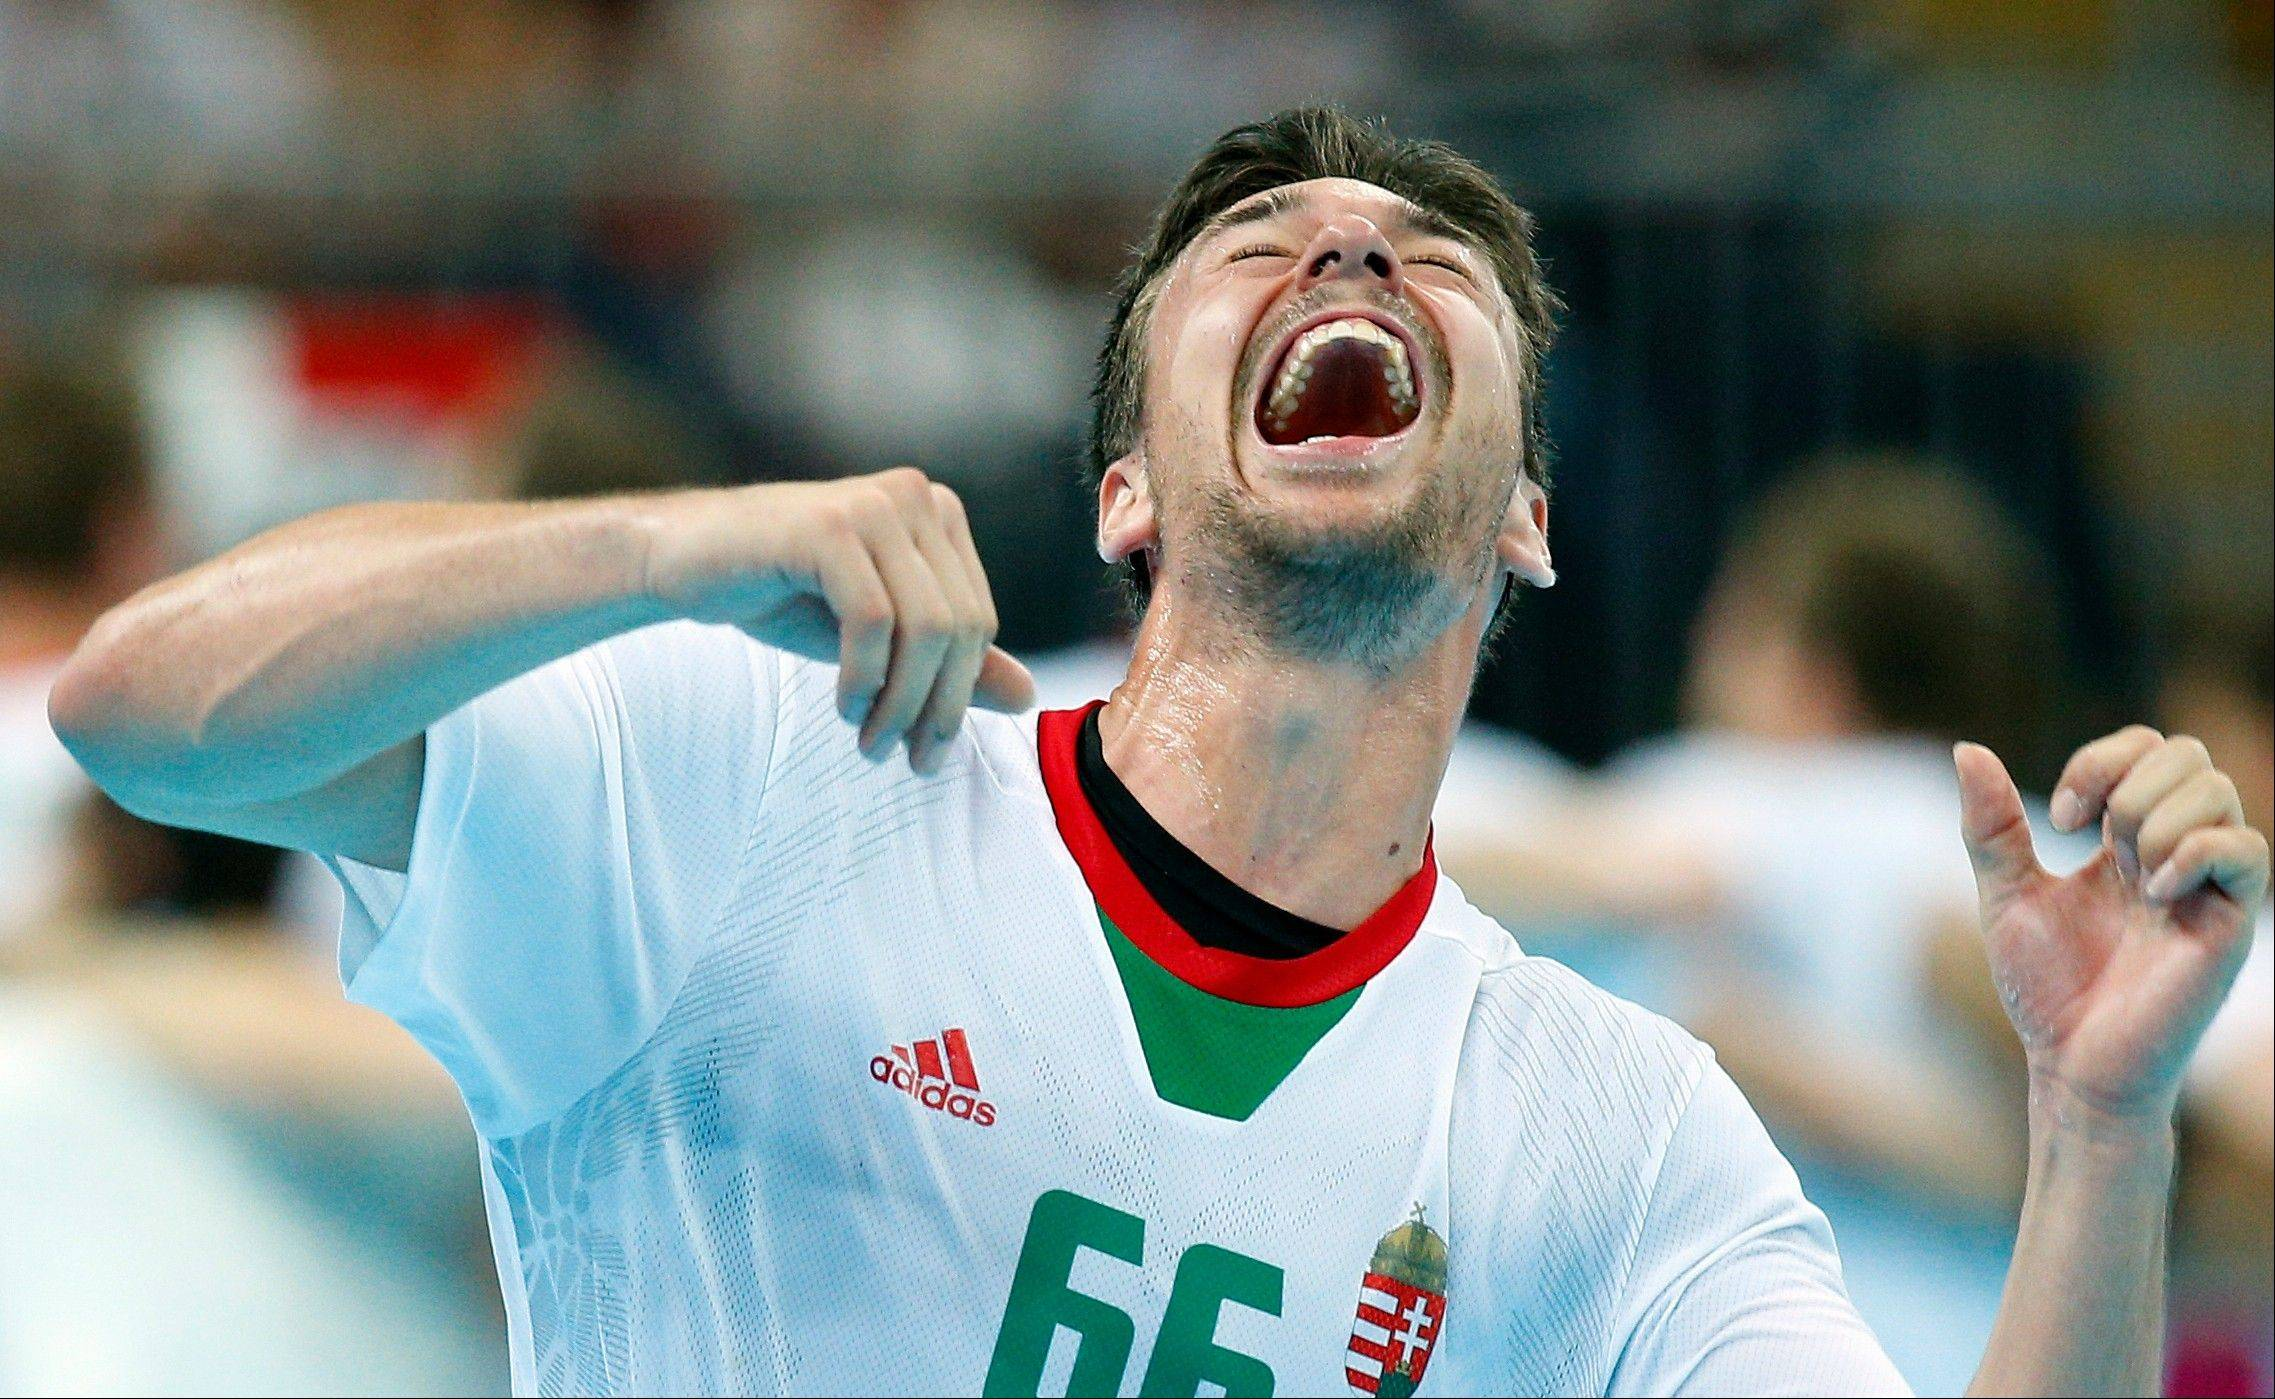 Hungary's Mate Lekai reacts after his team defeated Iceland during their men's handball quarterfinal match at the 2012 Summer Olympics, Wednesday, Aug. 8, 2012, in London.